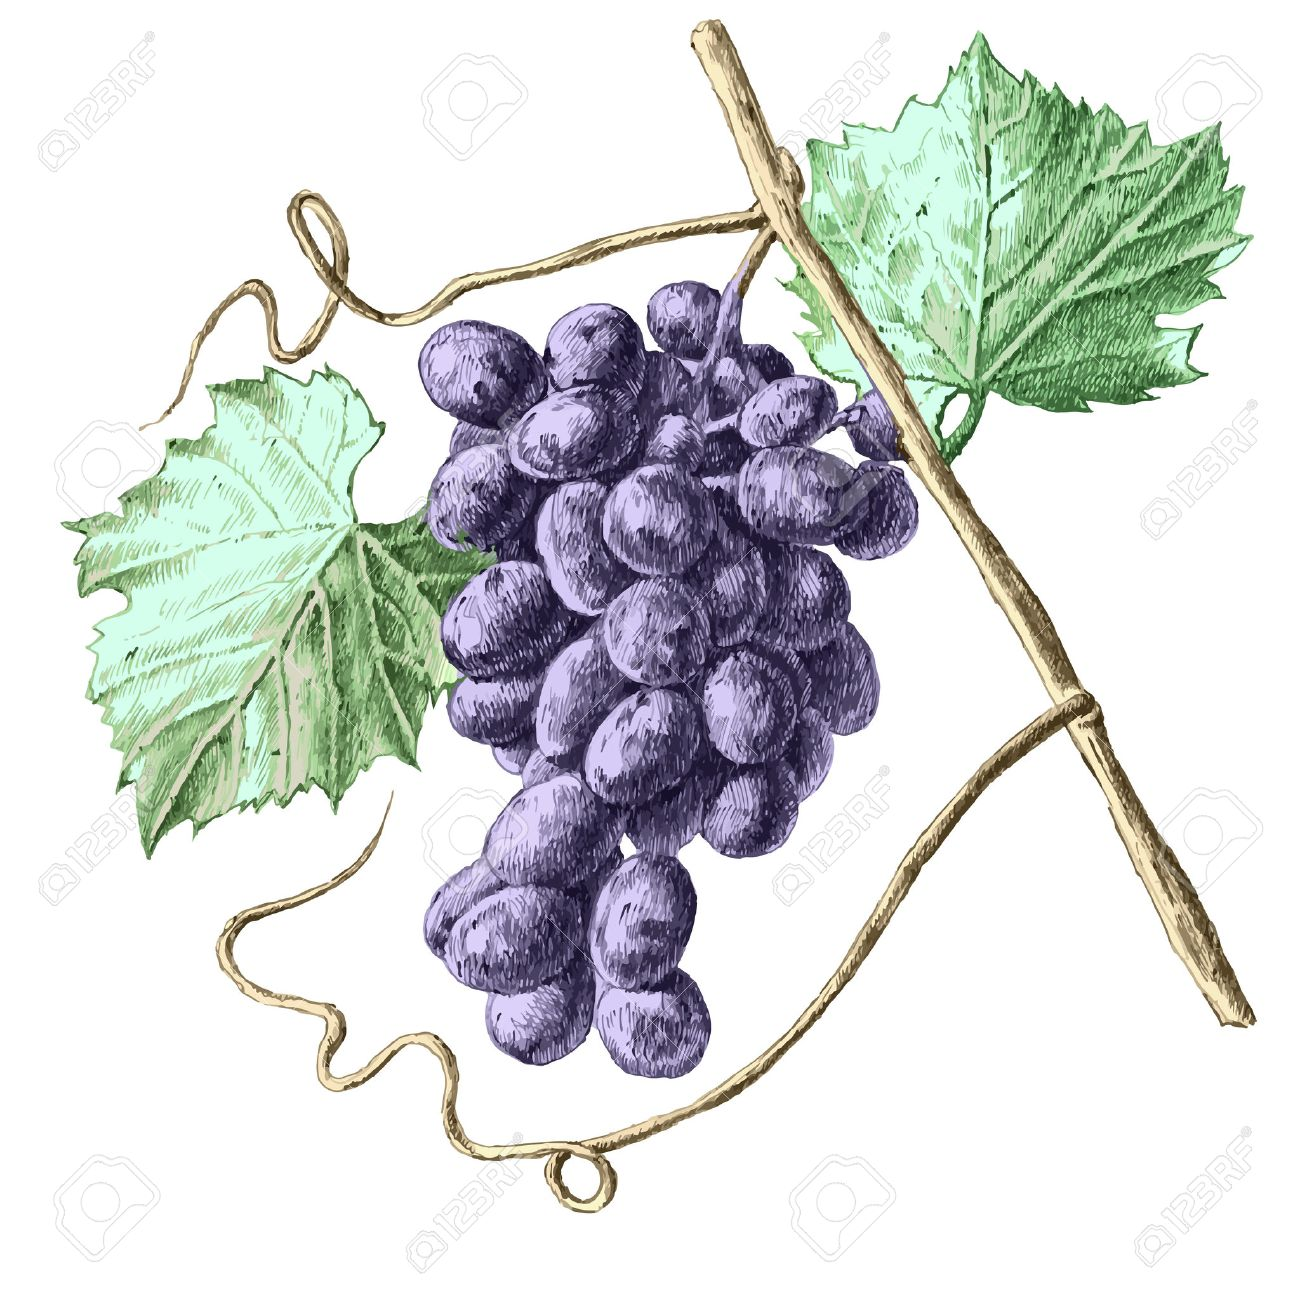 Garden Grapes: Illustration With Grapes And Leaves Hand Draw